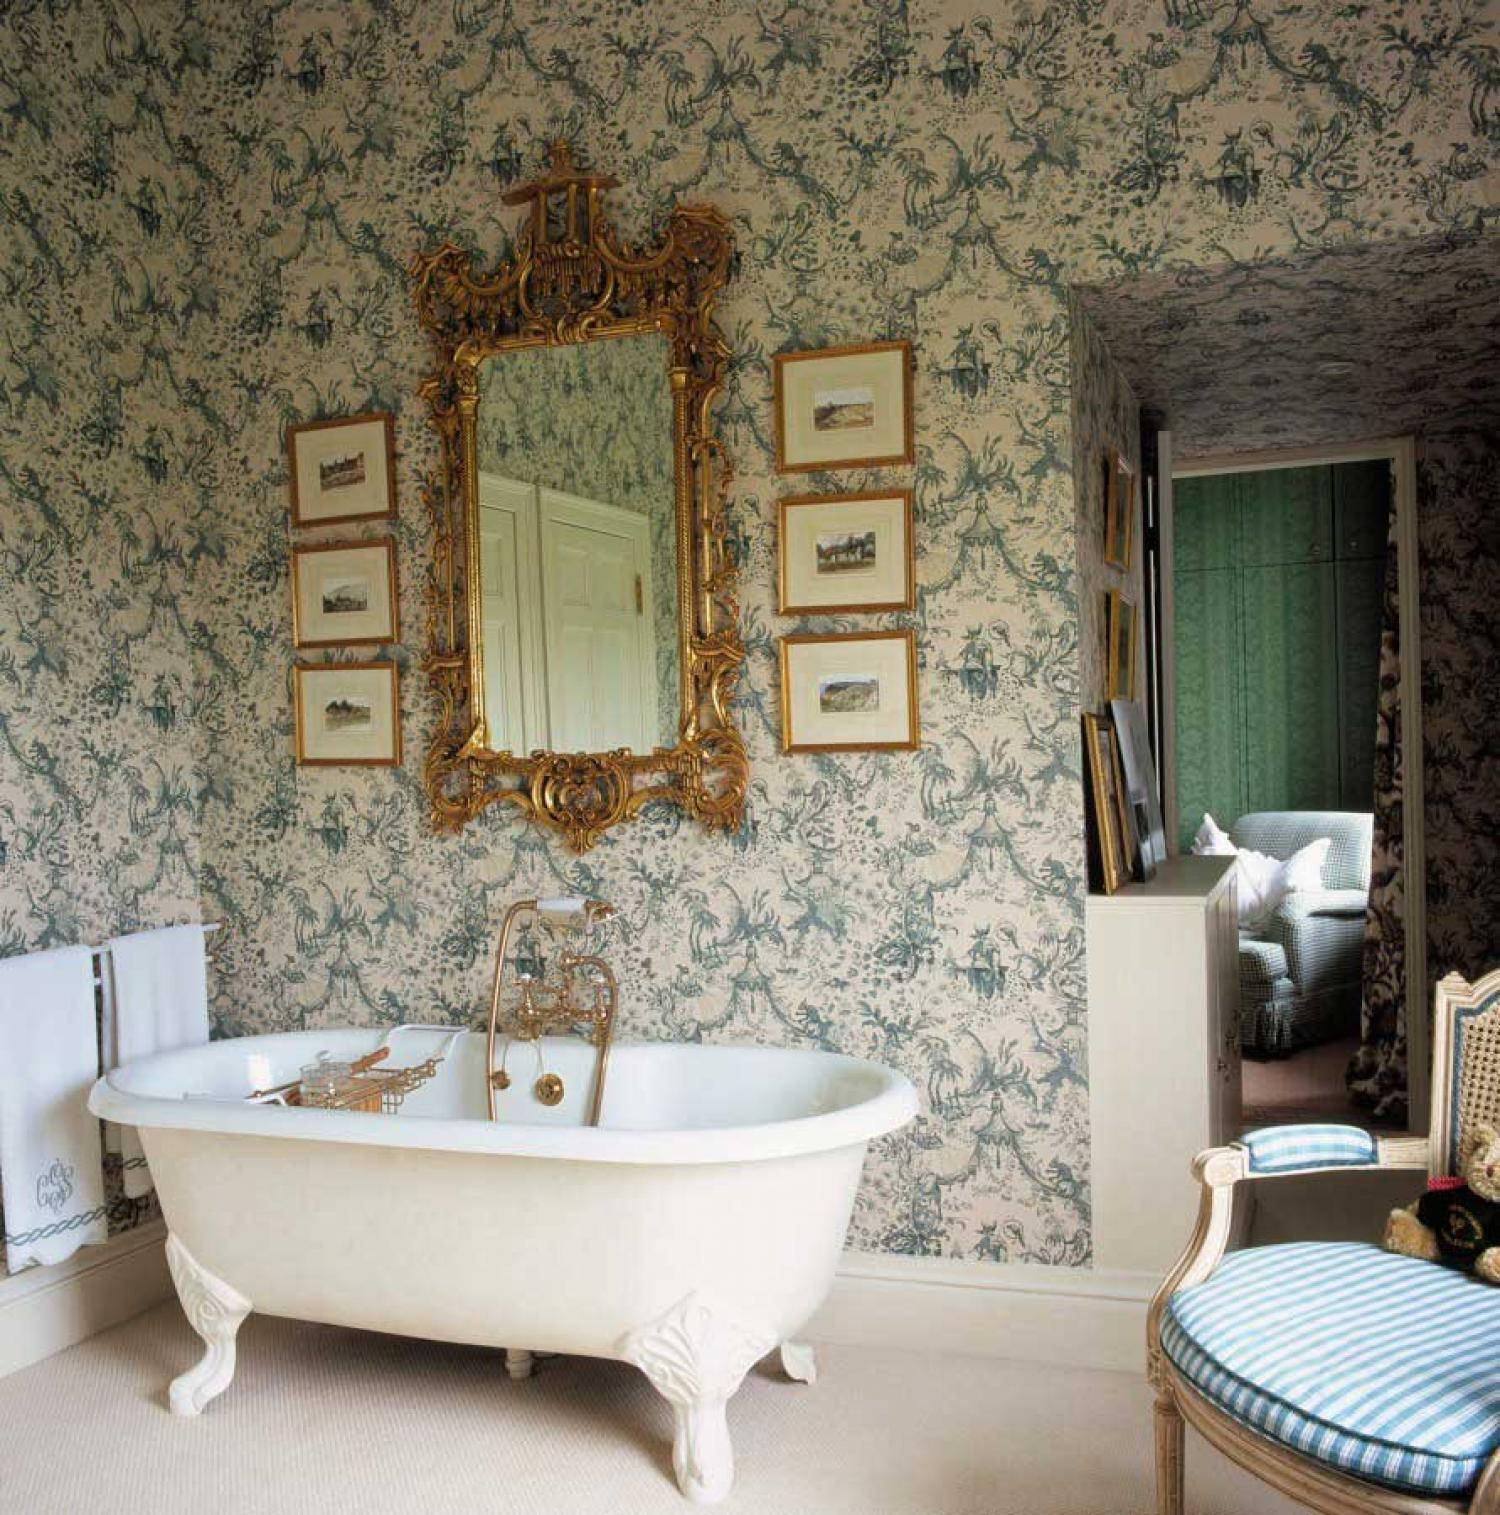 Victorian bathroom mirrors uk - 10 Things To Know About Bathroom Mirrors Modern